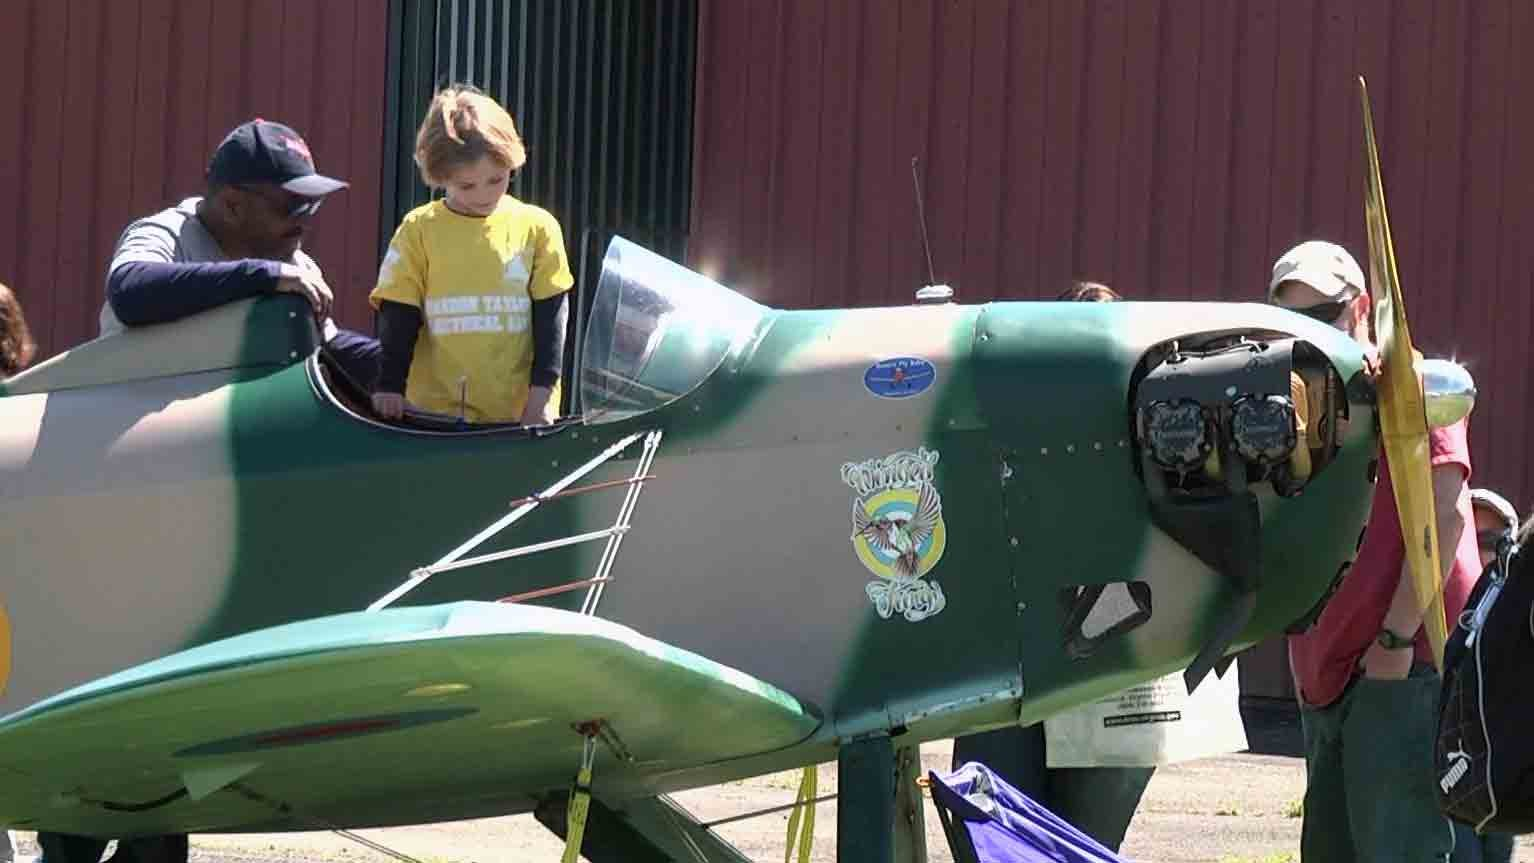 Dozens Gather at Gordonsville Municipal Airport for Cub Scout Aviation Day